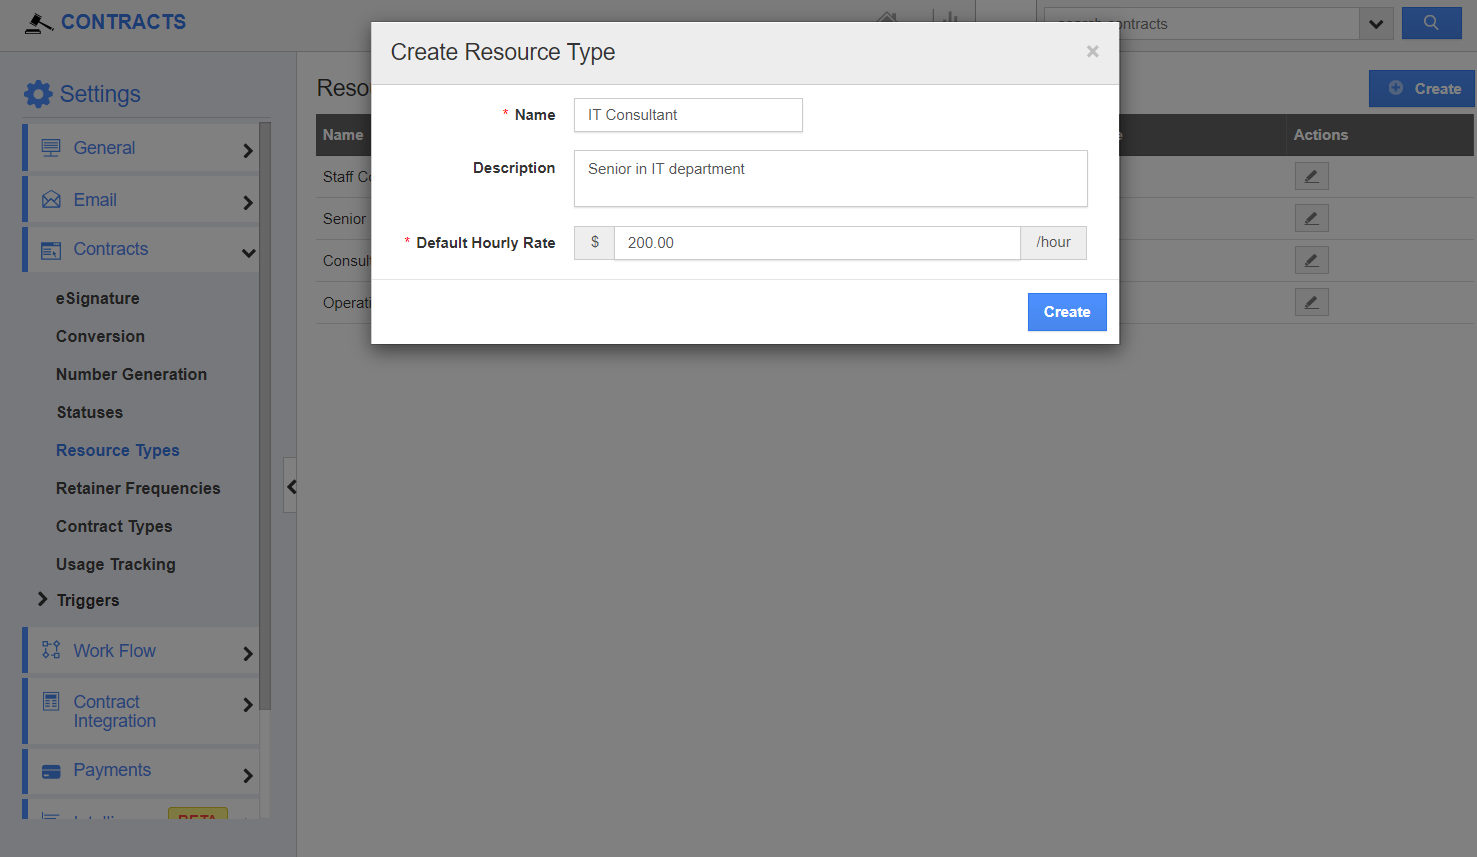 Create Resource Type